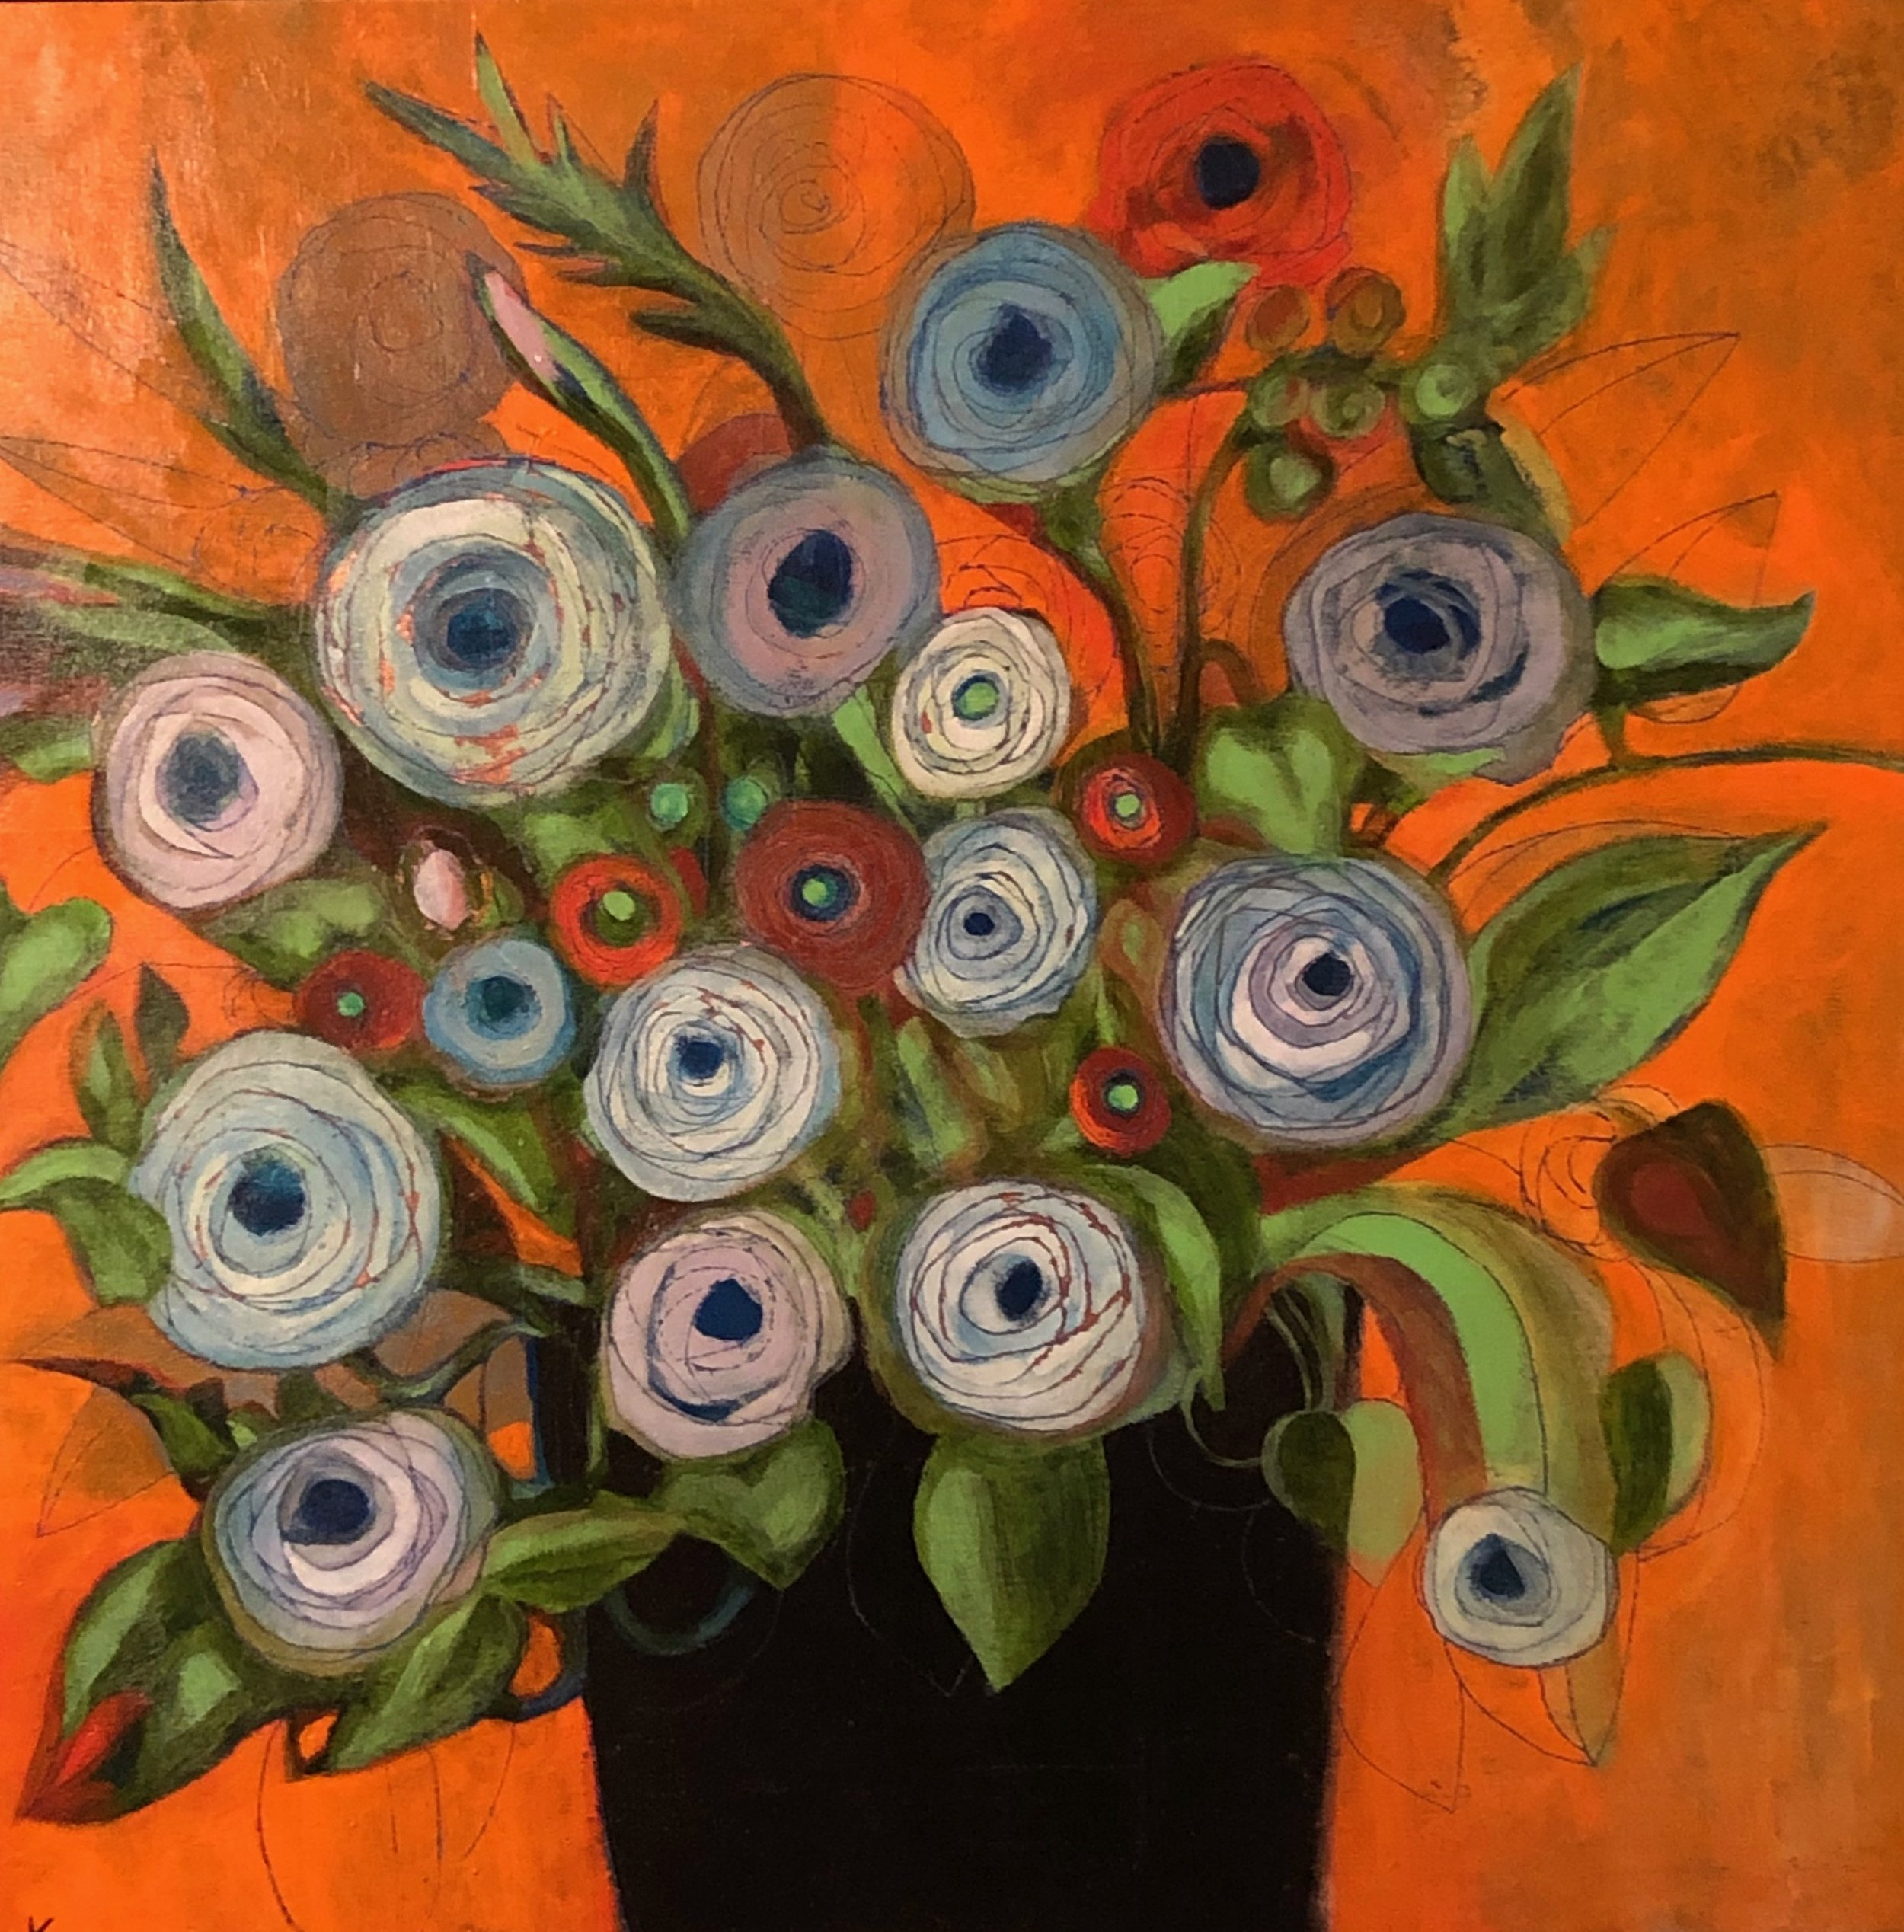 """Violet Blooms In Orange"", copper leaf, acrylic on panel, 24"" x 24"", $1,200"